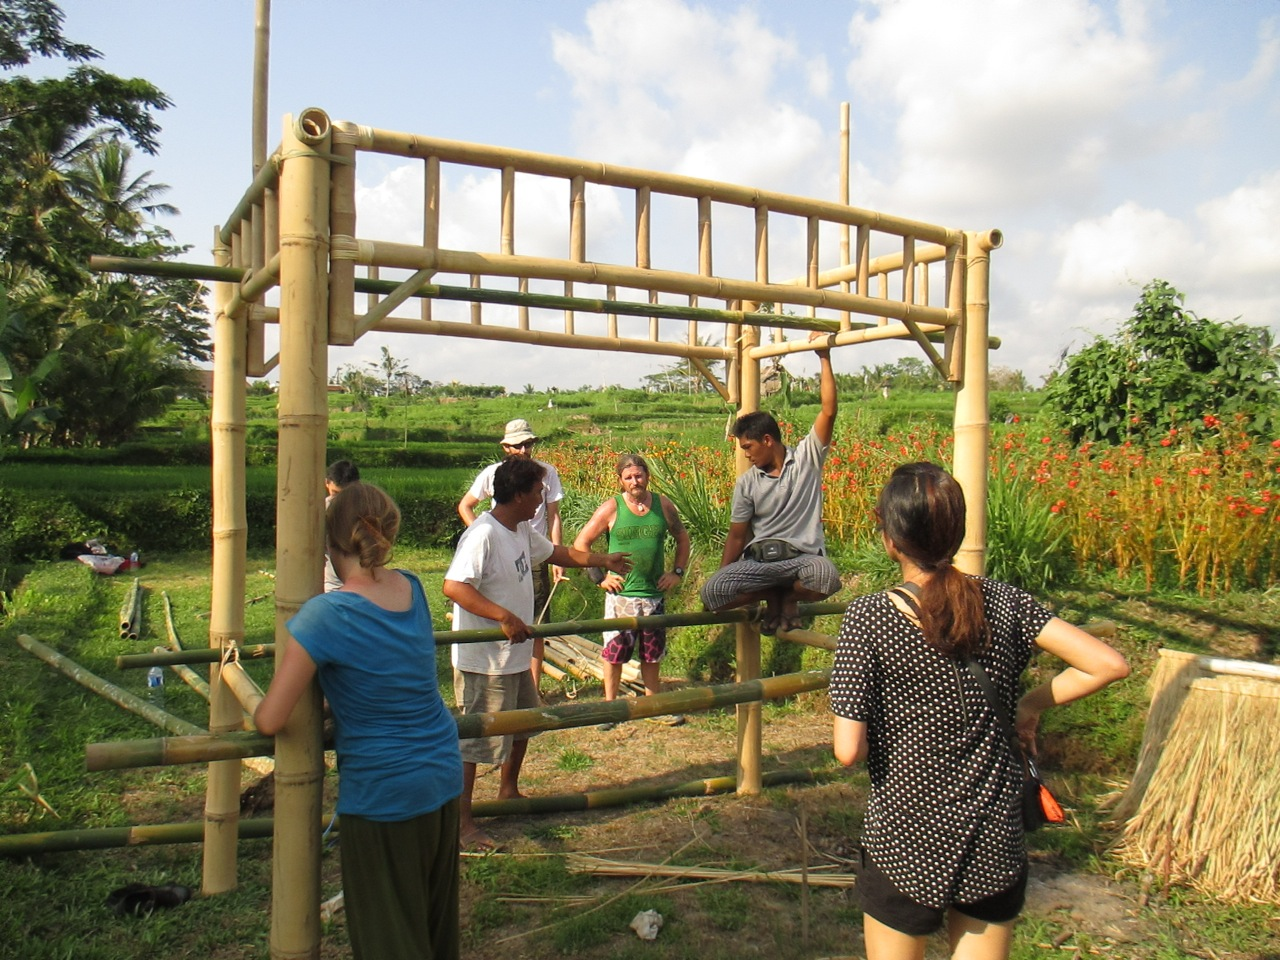 The frame goes up in Subak Malung